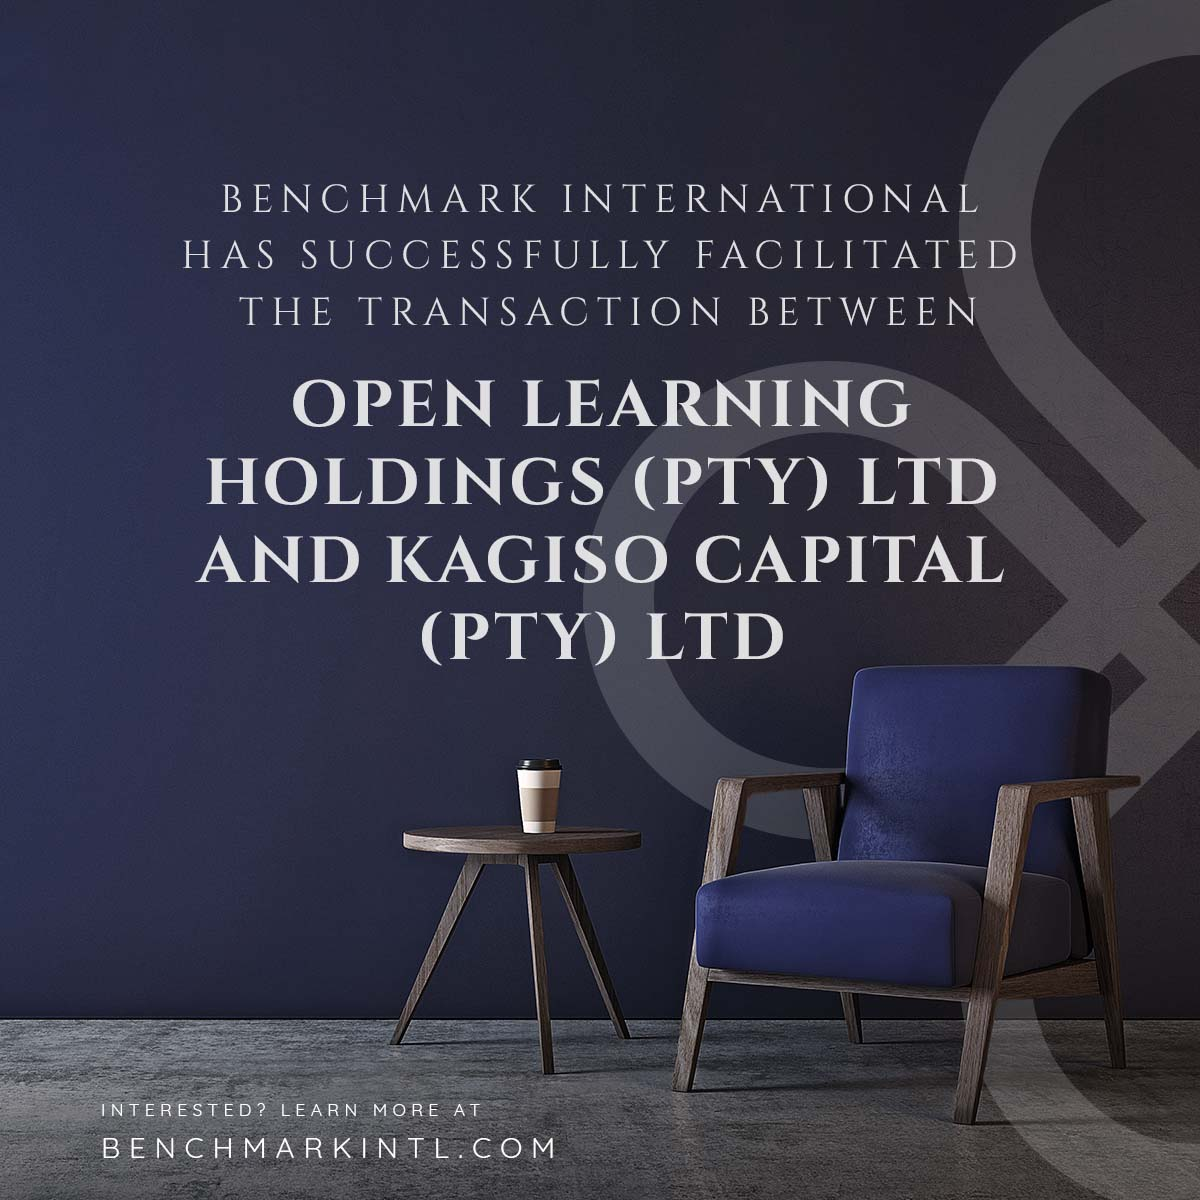 Open Learning Holdings and Kagiso Capital